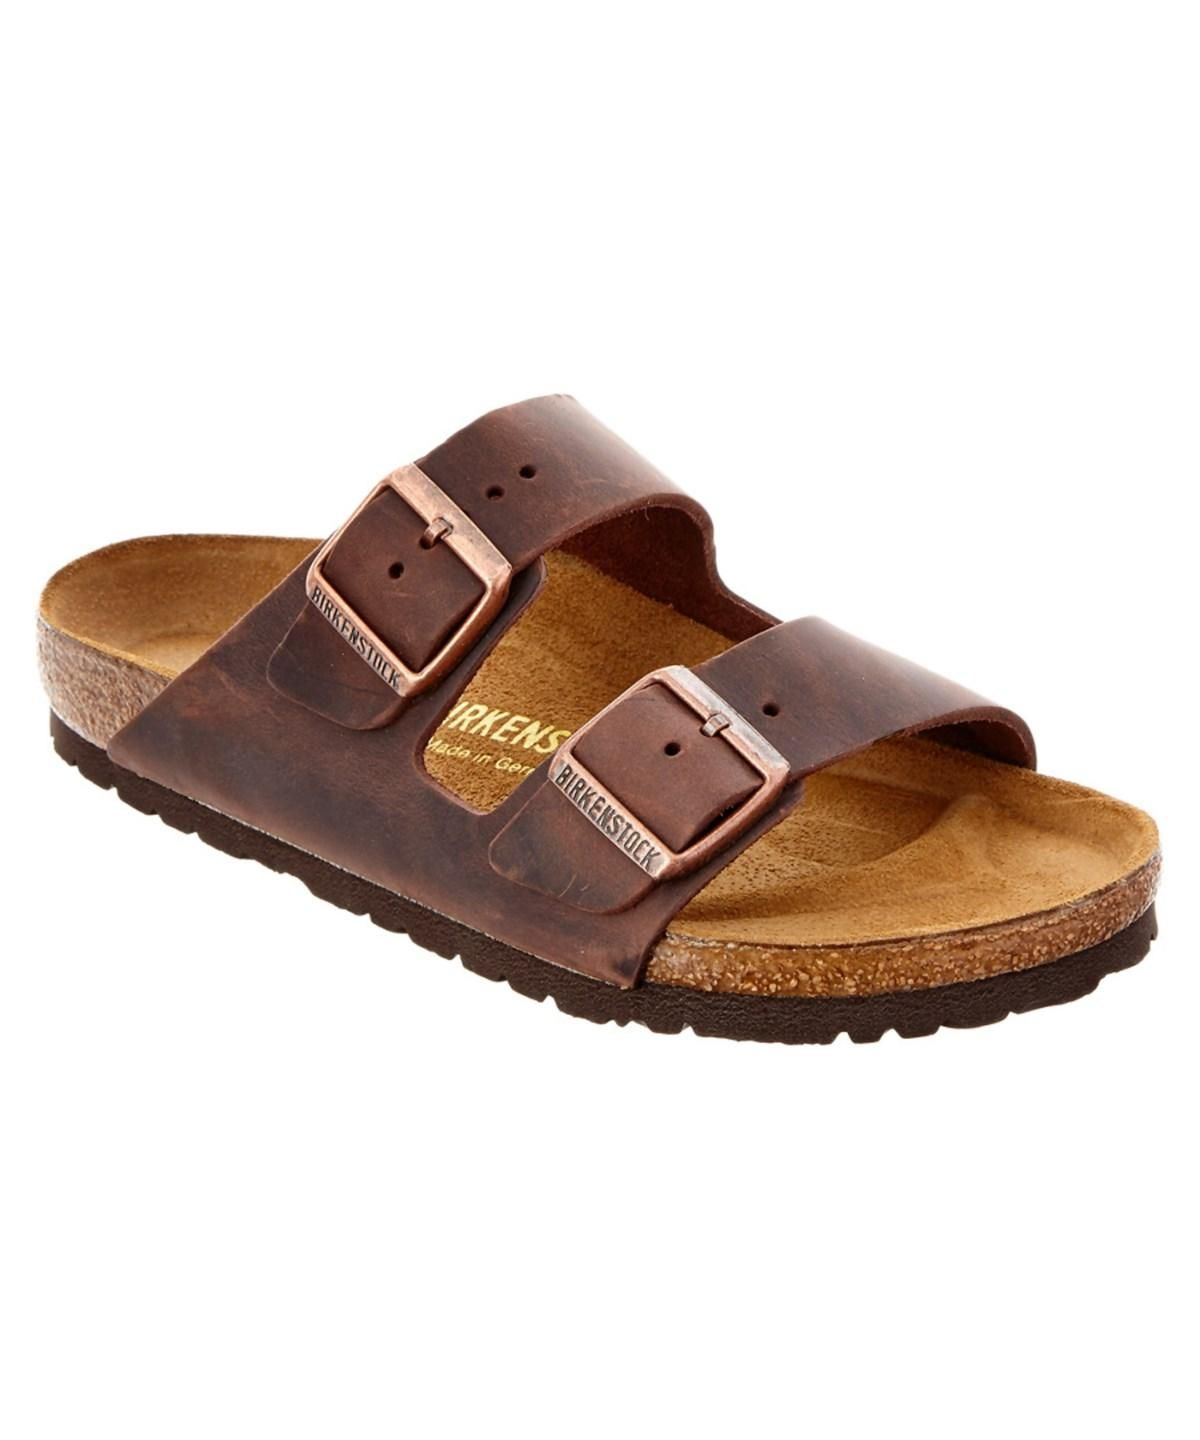 Shop BIRKENSTOCK Womens Arizona Two-Strap Narrow Synthetic Sandals ... 62835b665